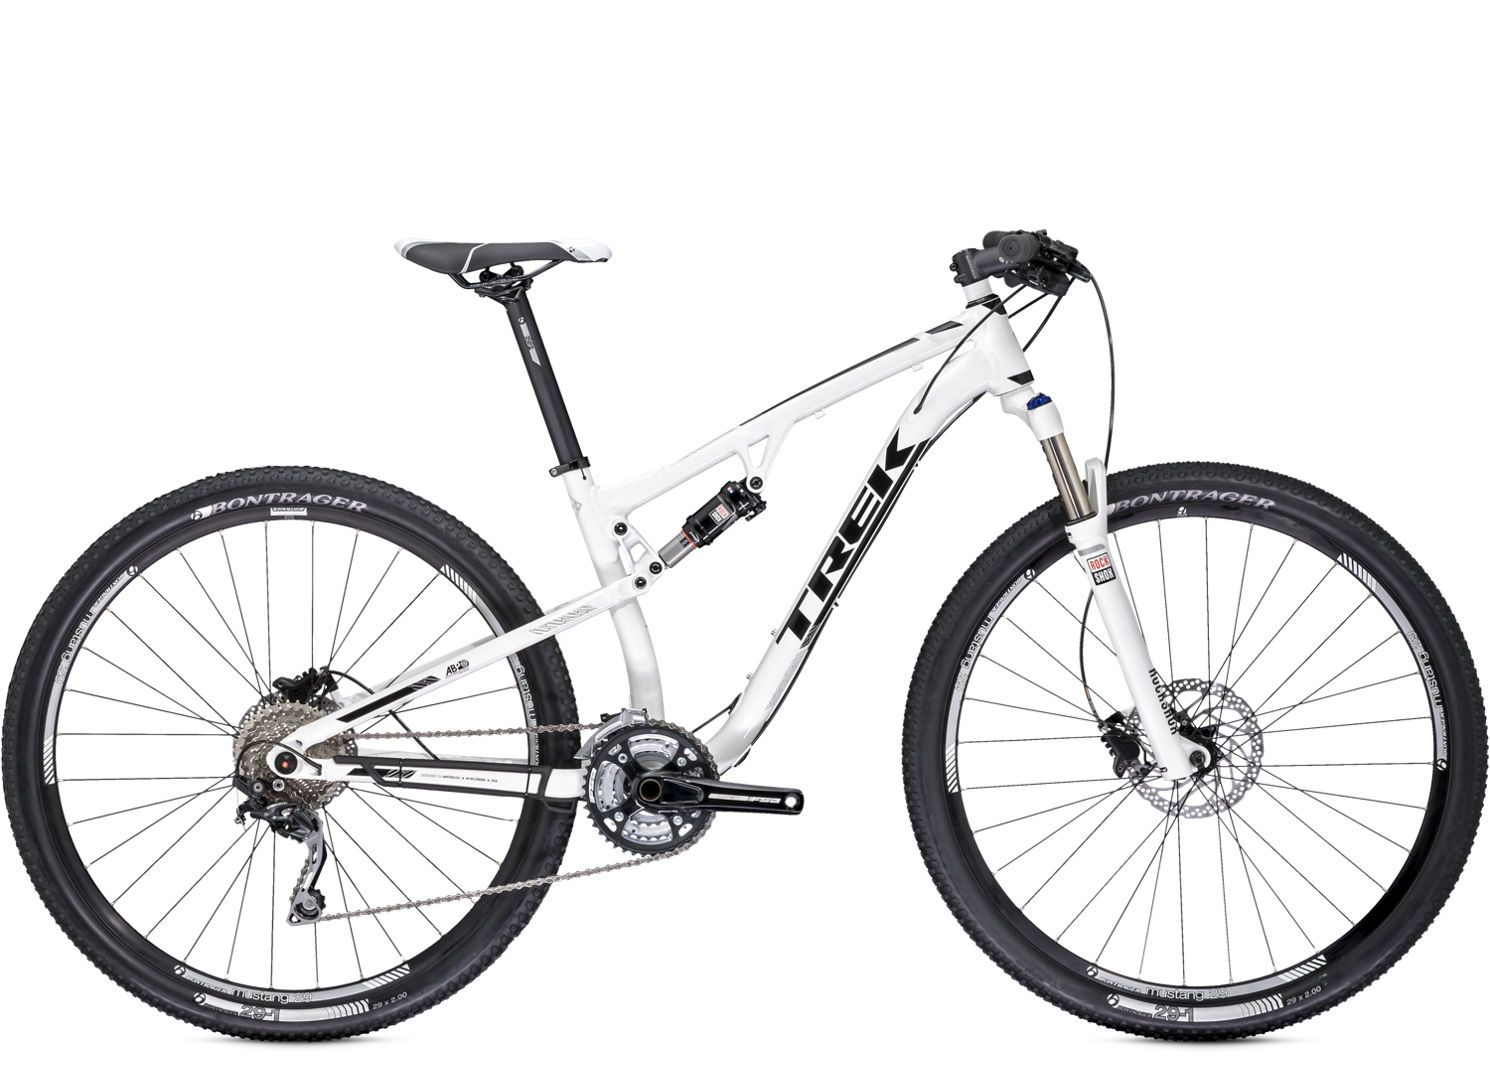 982c75123d9 Cross Country: Superfly FS 6. Superfly FS is the ultimate 29er full  suspension race bike. You get speed, speed, and more speed, plus incredible  handling and ...